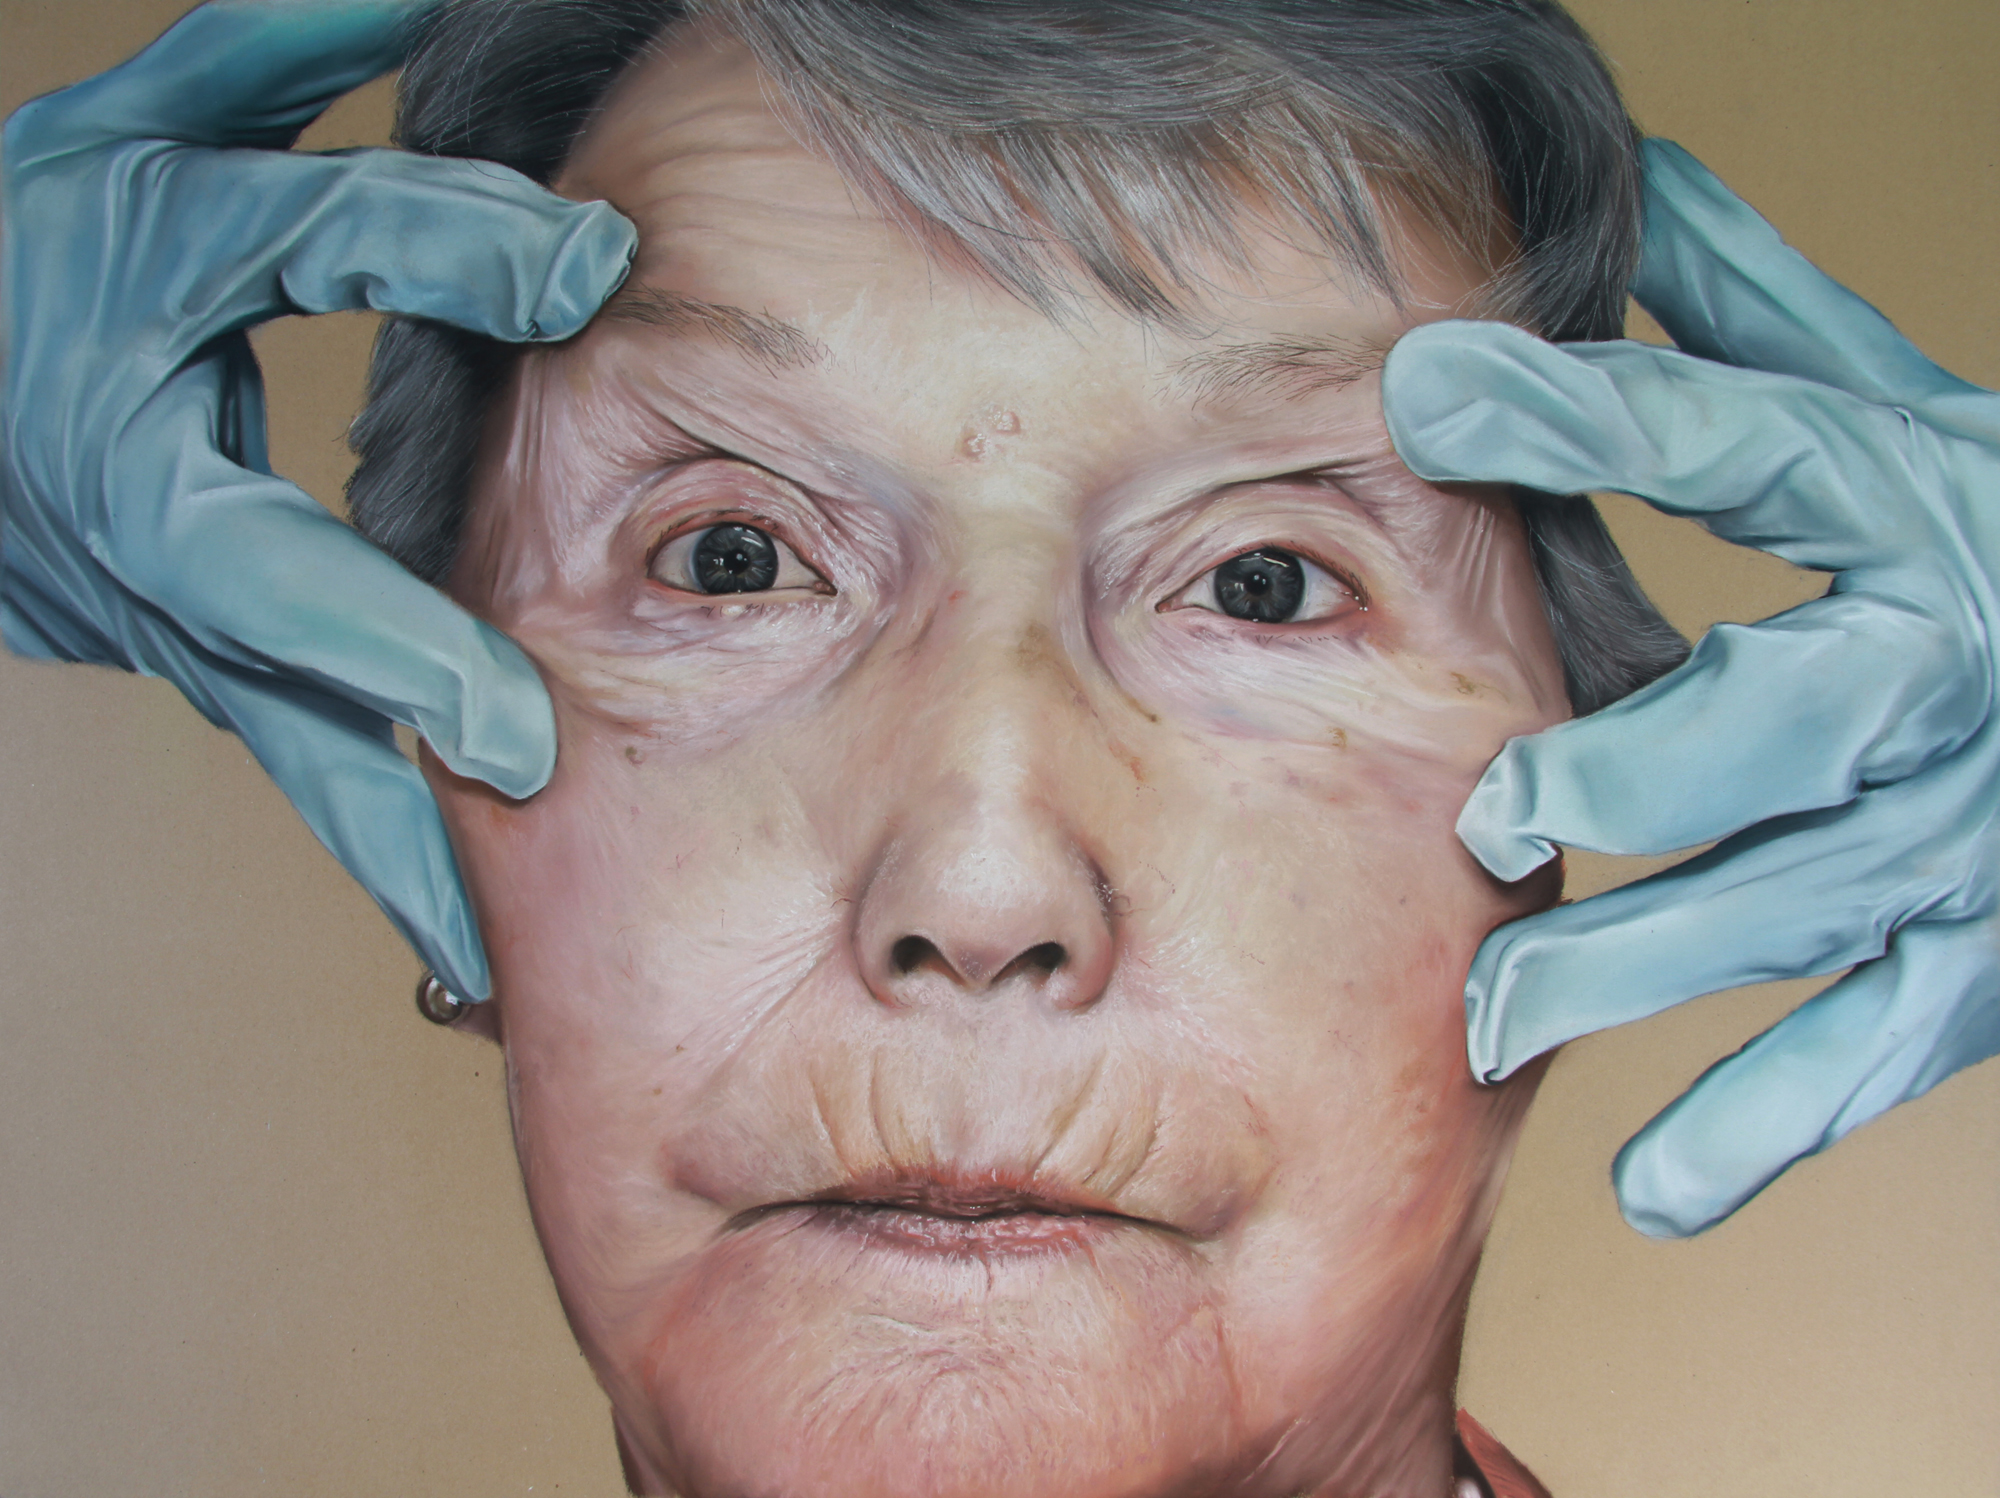 PEOPLE'S CHOICE AWARD: OLIVER JONES    3 Steps to Younger Looking Skin Pt 3.,  Pastel on paper, 2013. About The John Ruskin Prize